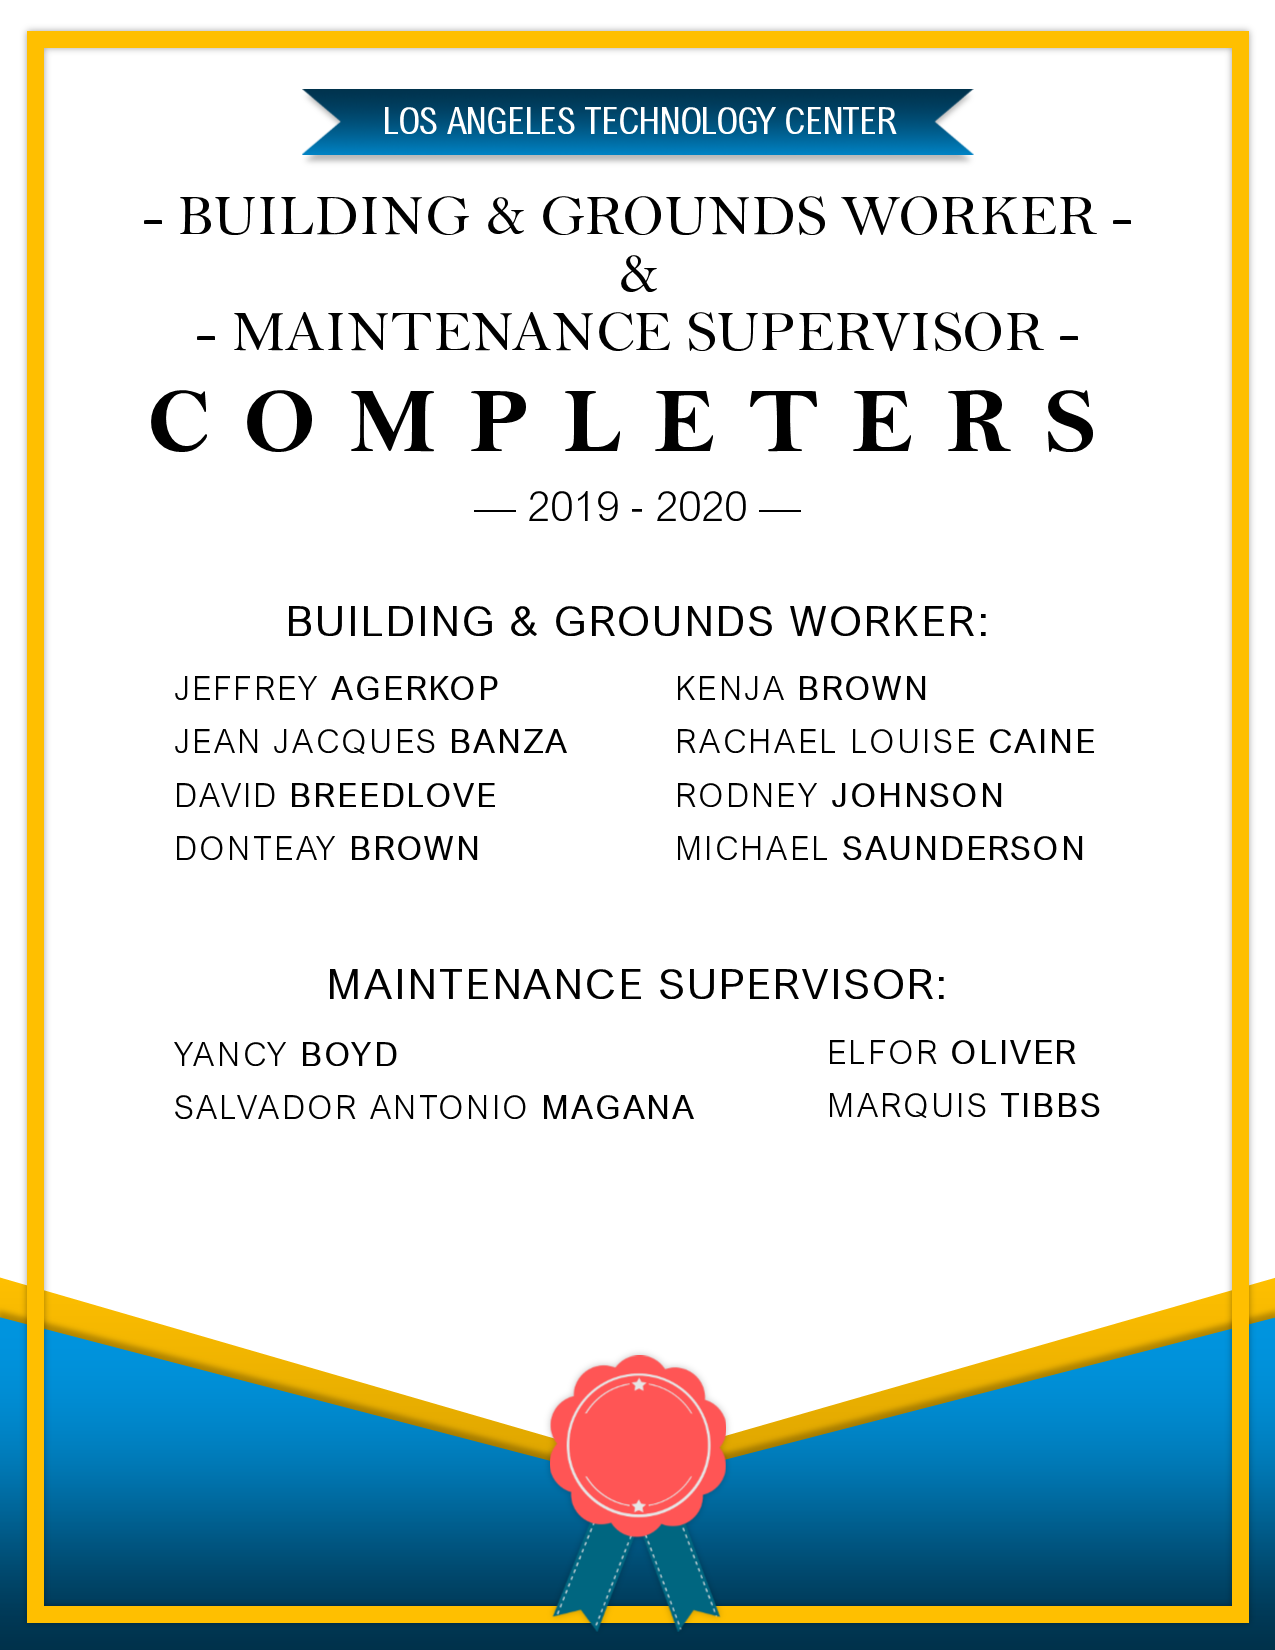 B&G and Maintenance Completers